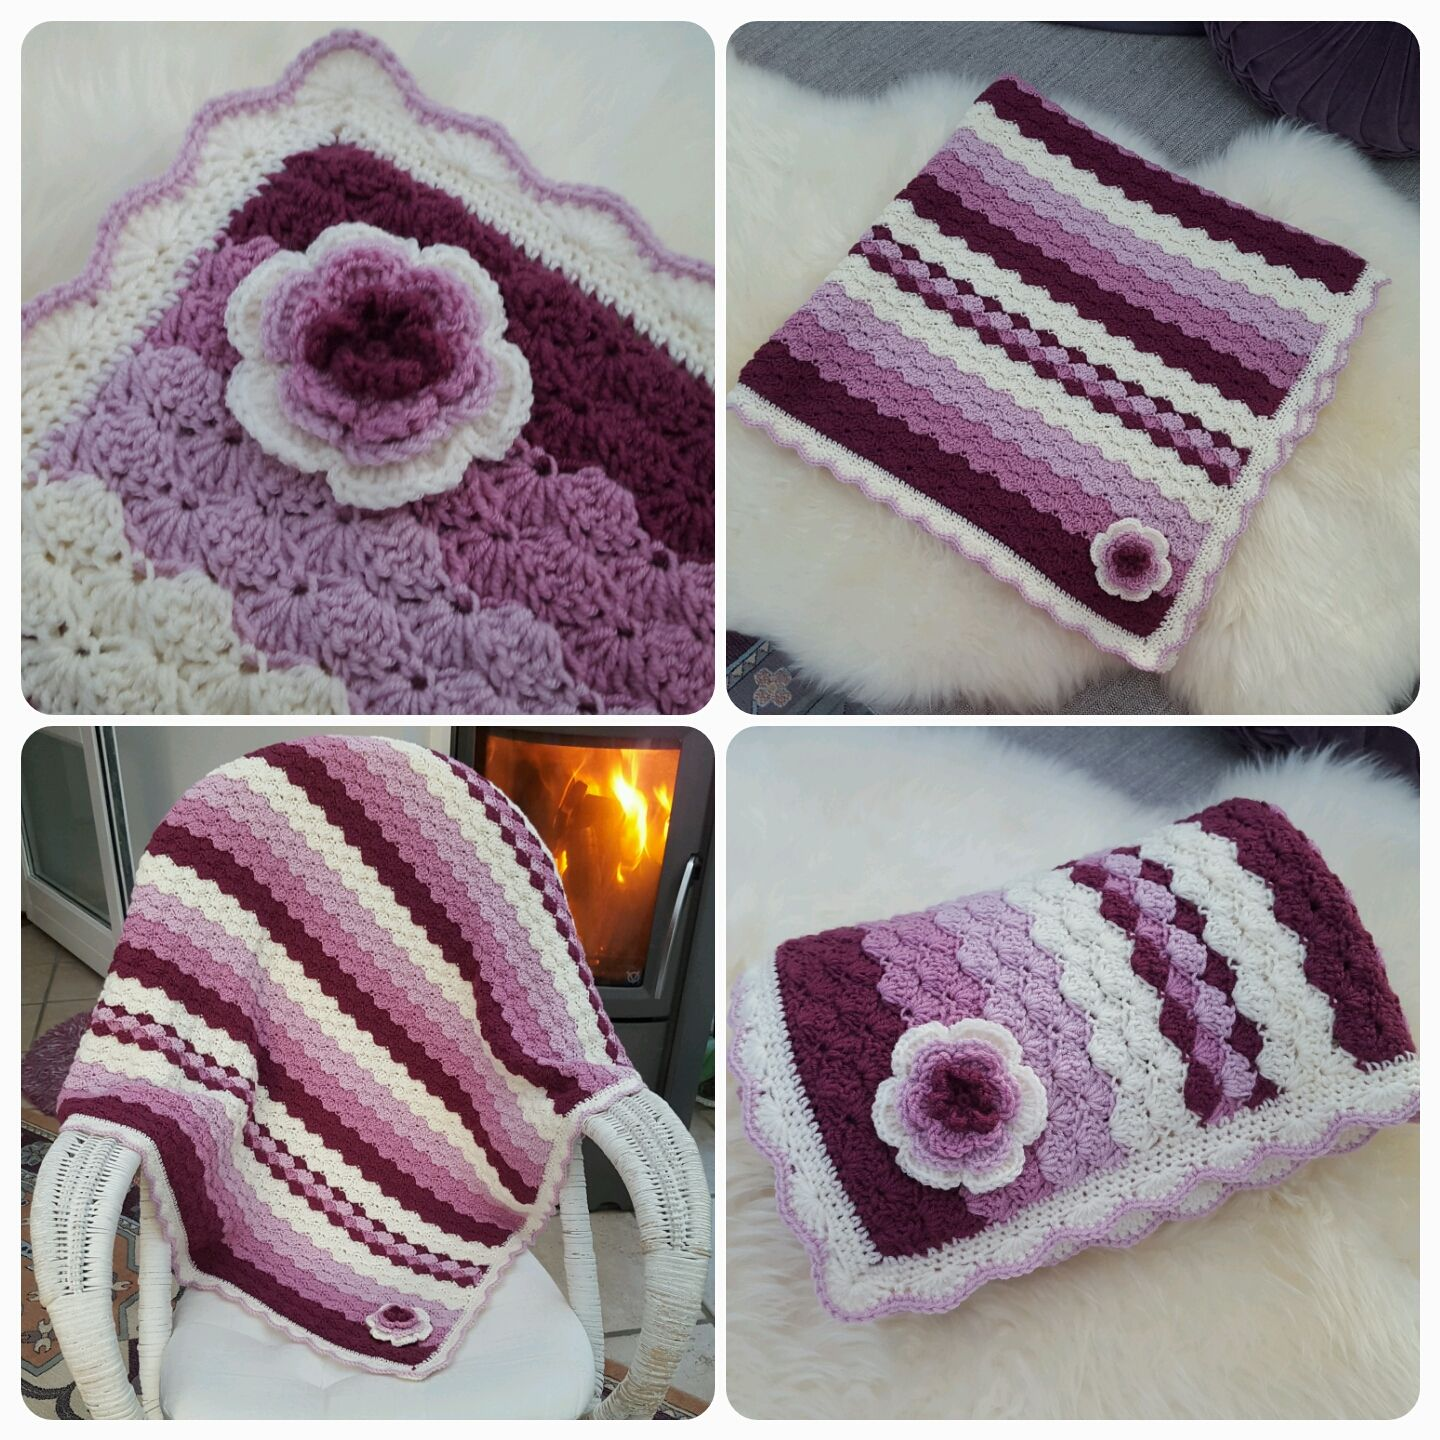 Crocheted shell stitch baby girl blanket made with Drops baby merino ...